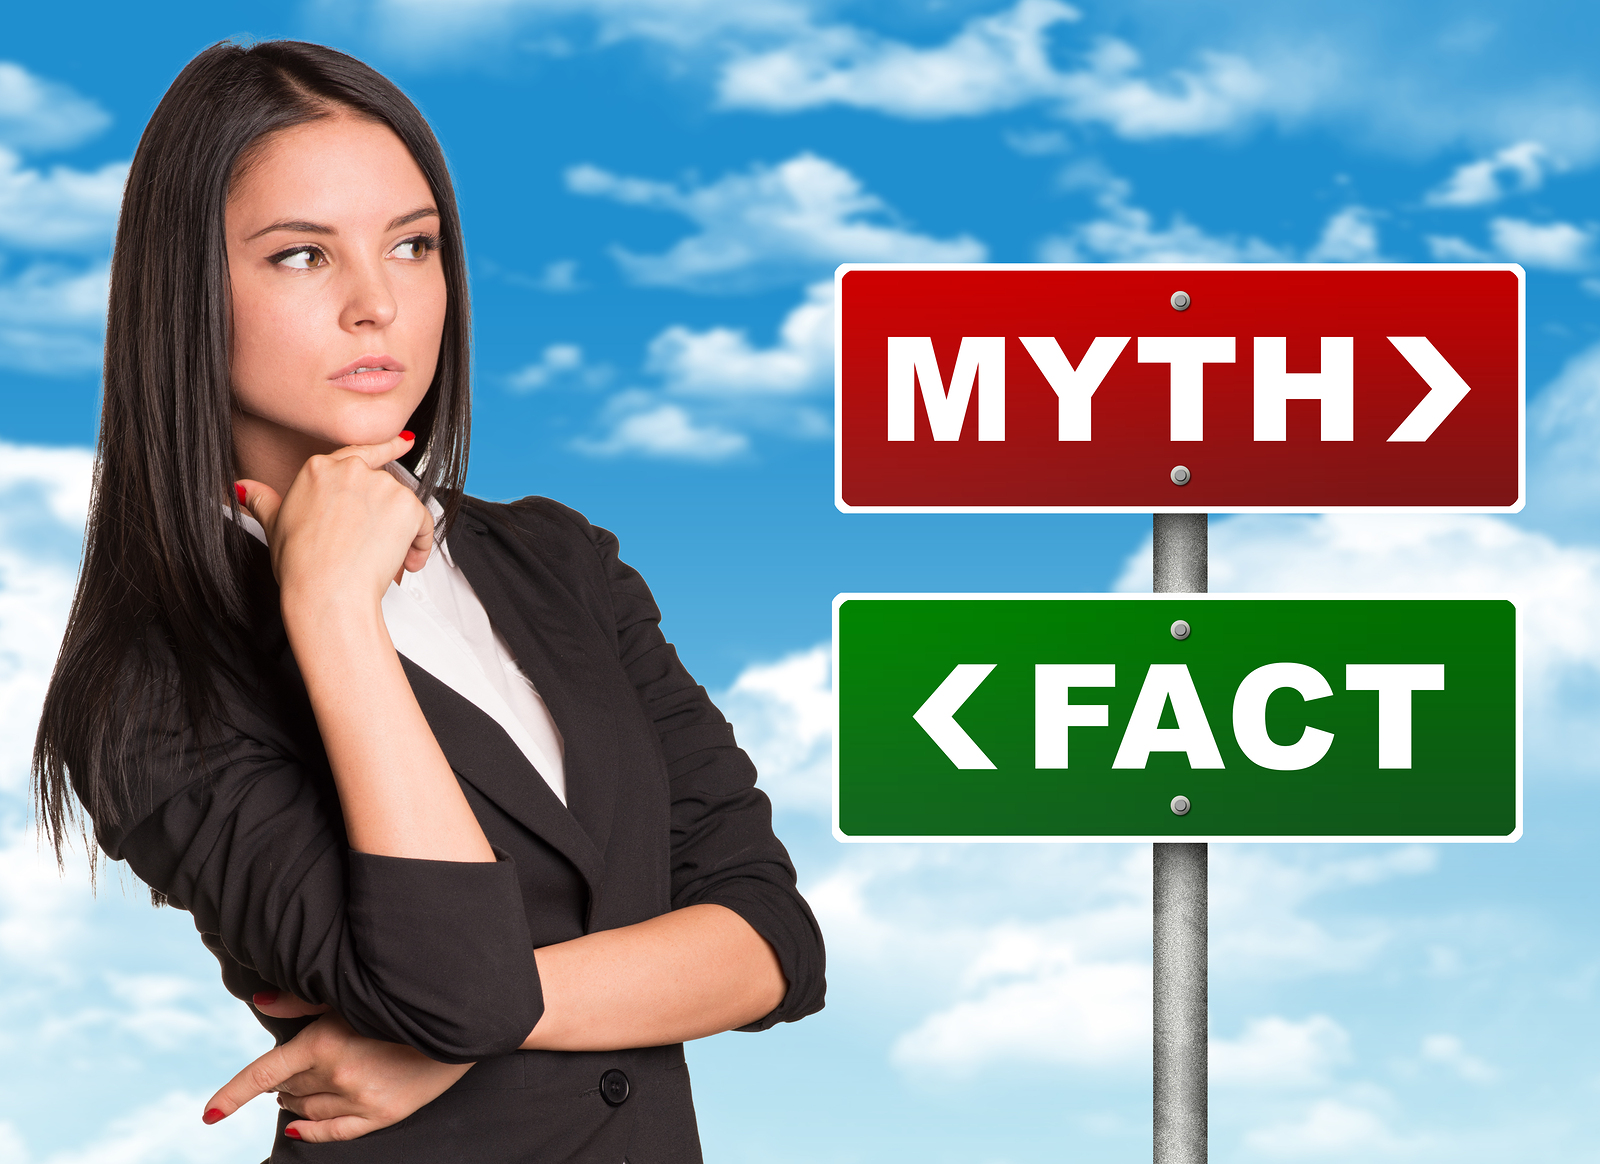 Four Big Dental Myths Dispelled